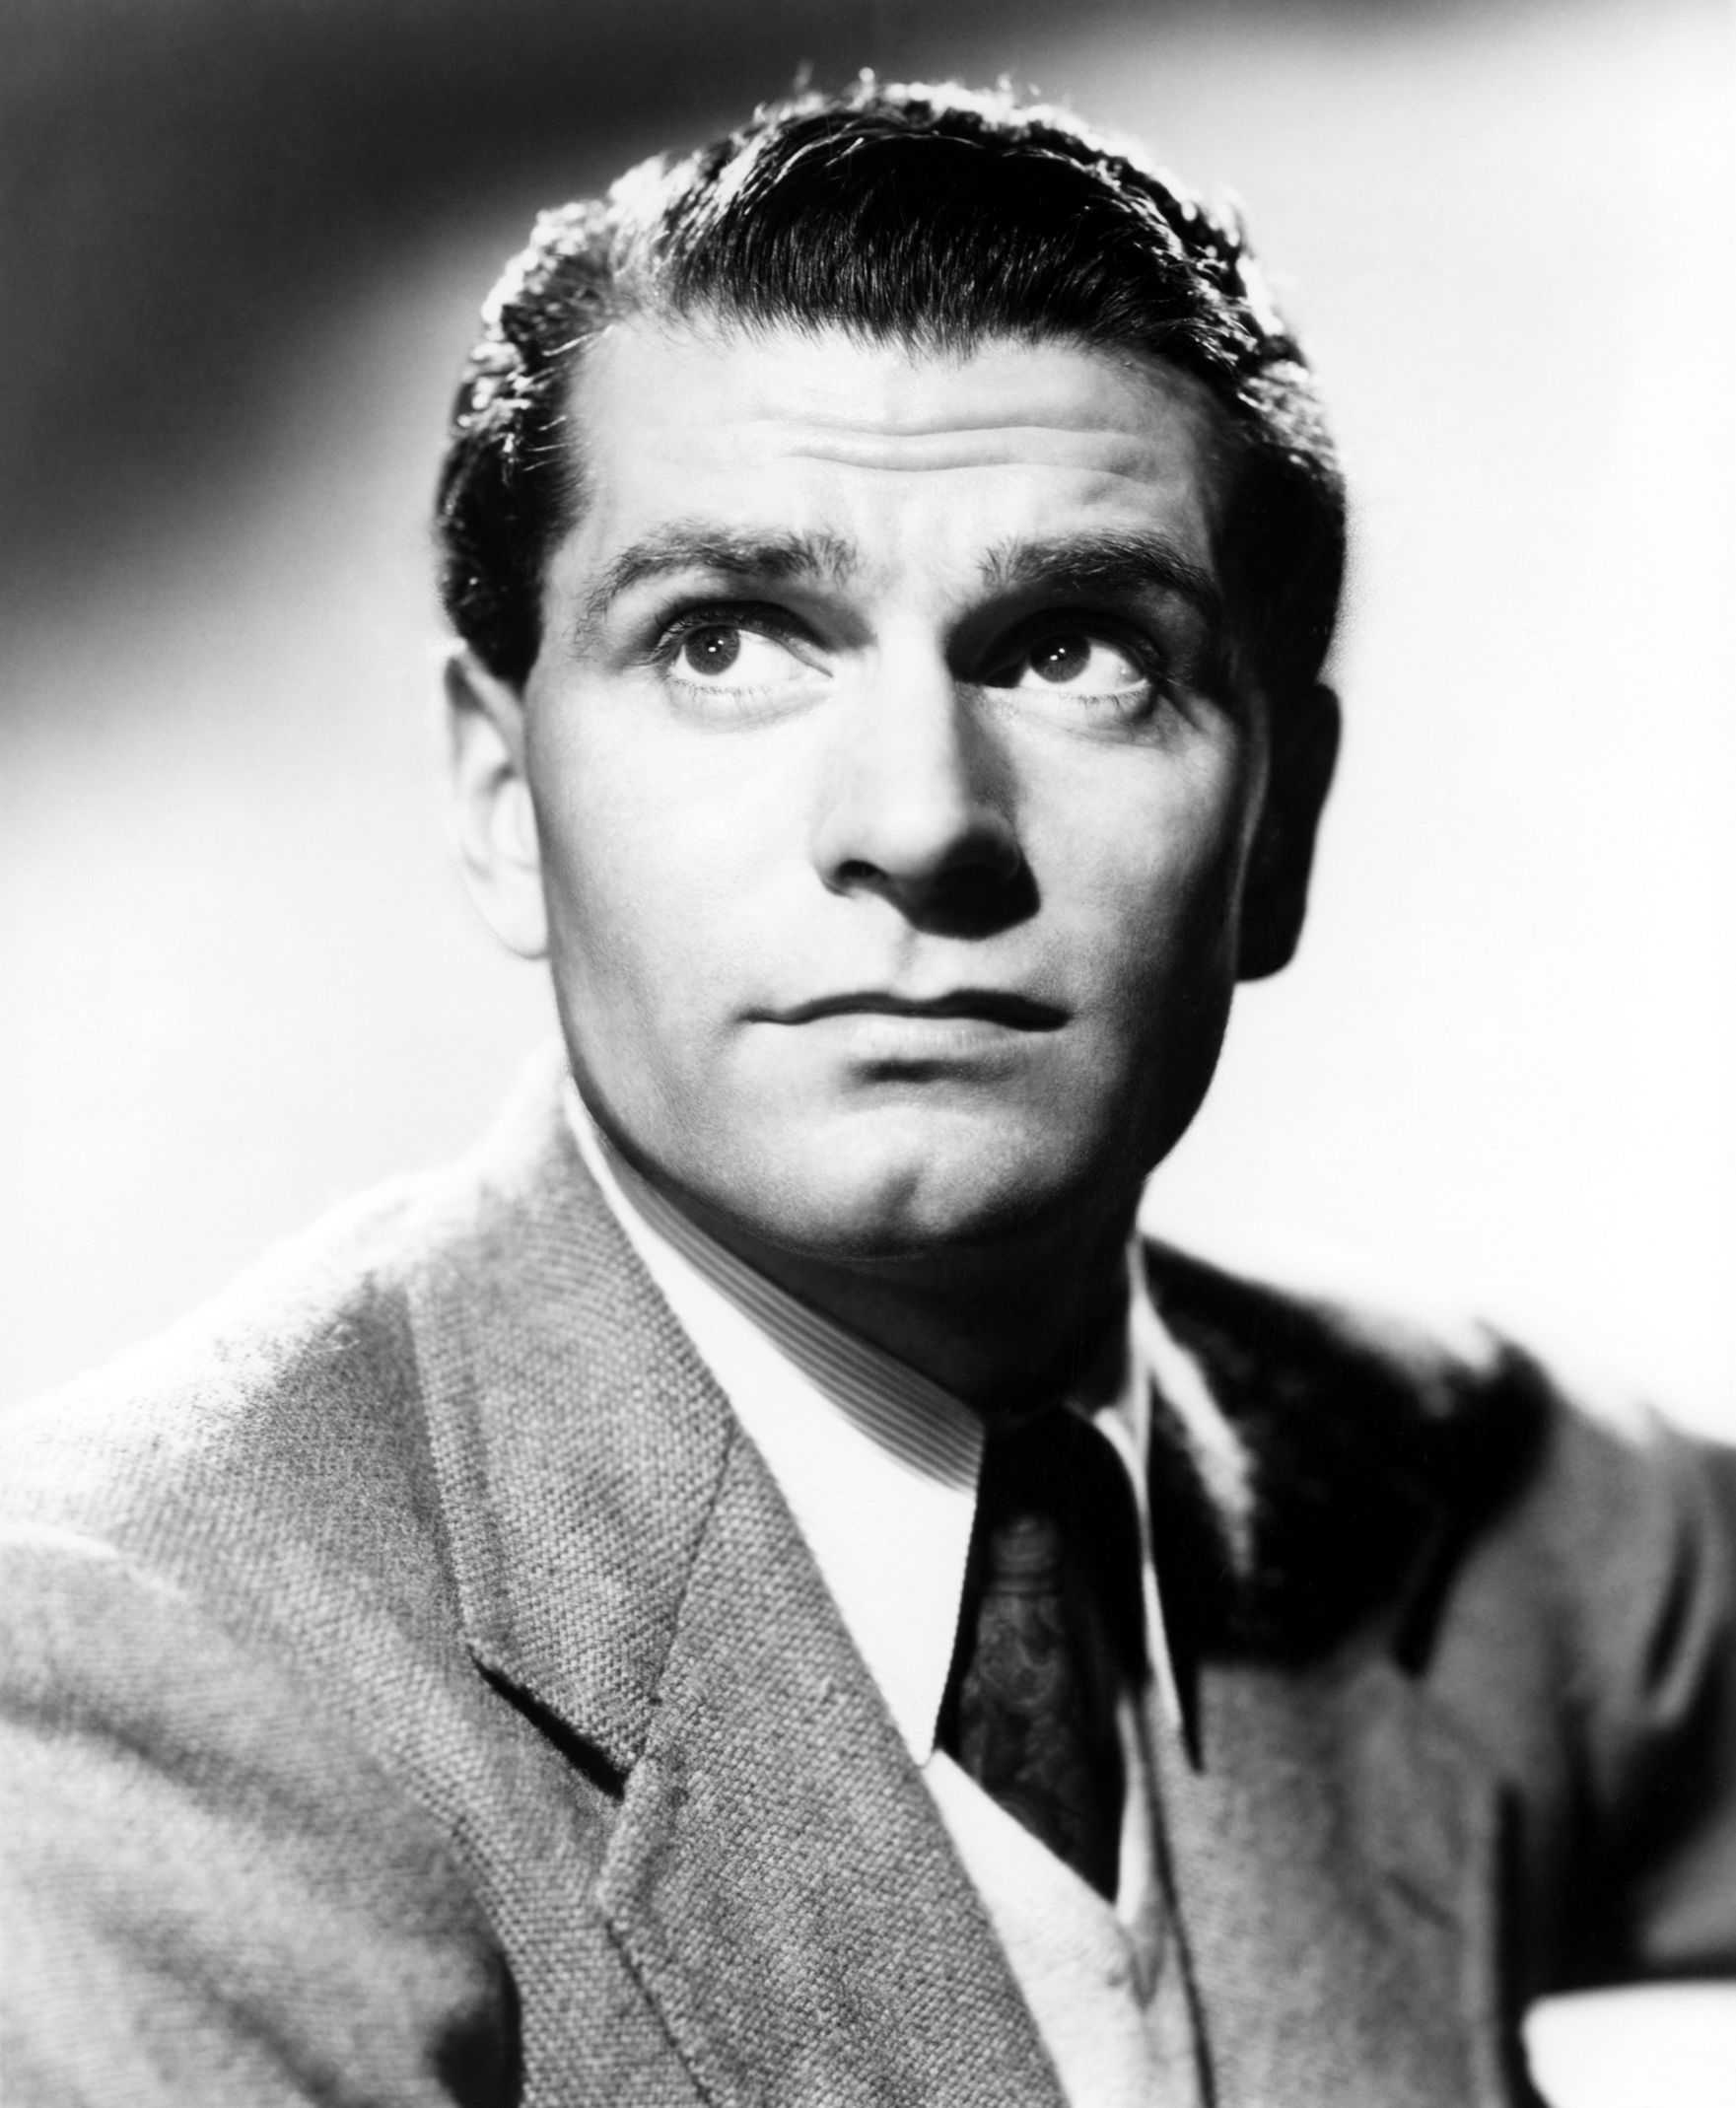 Laurence olivier spartacus quotes - Laurence Olivier 1907 1989 Born In England Olivier Is Best Known For